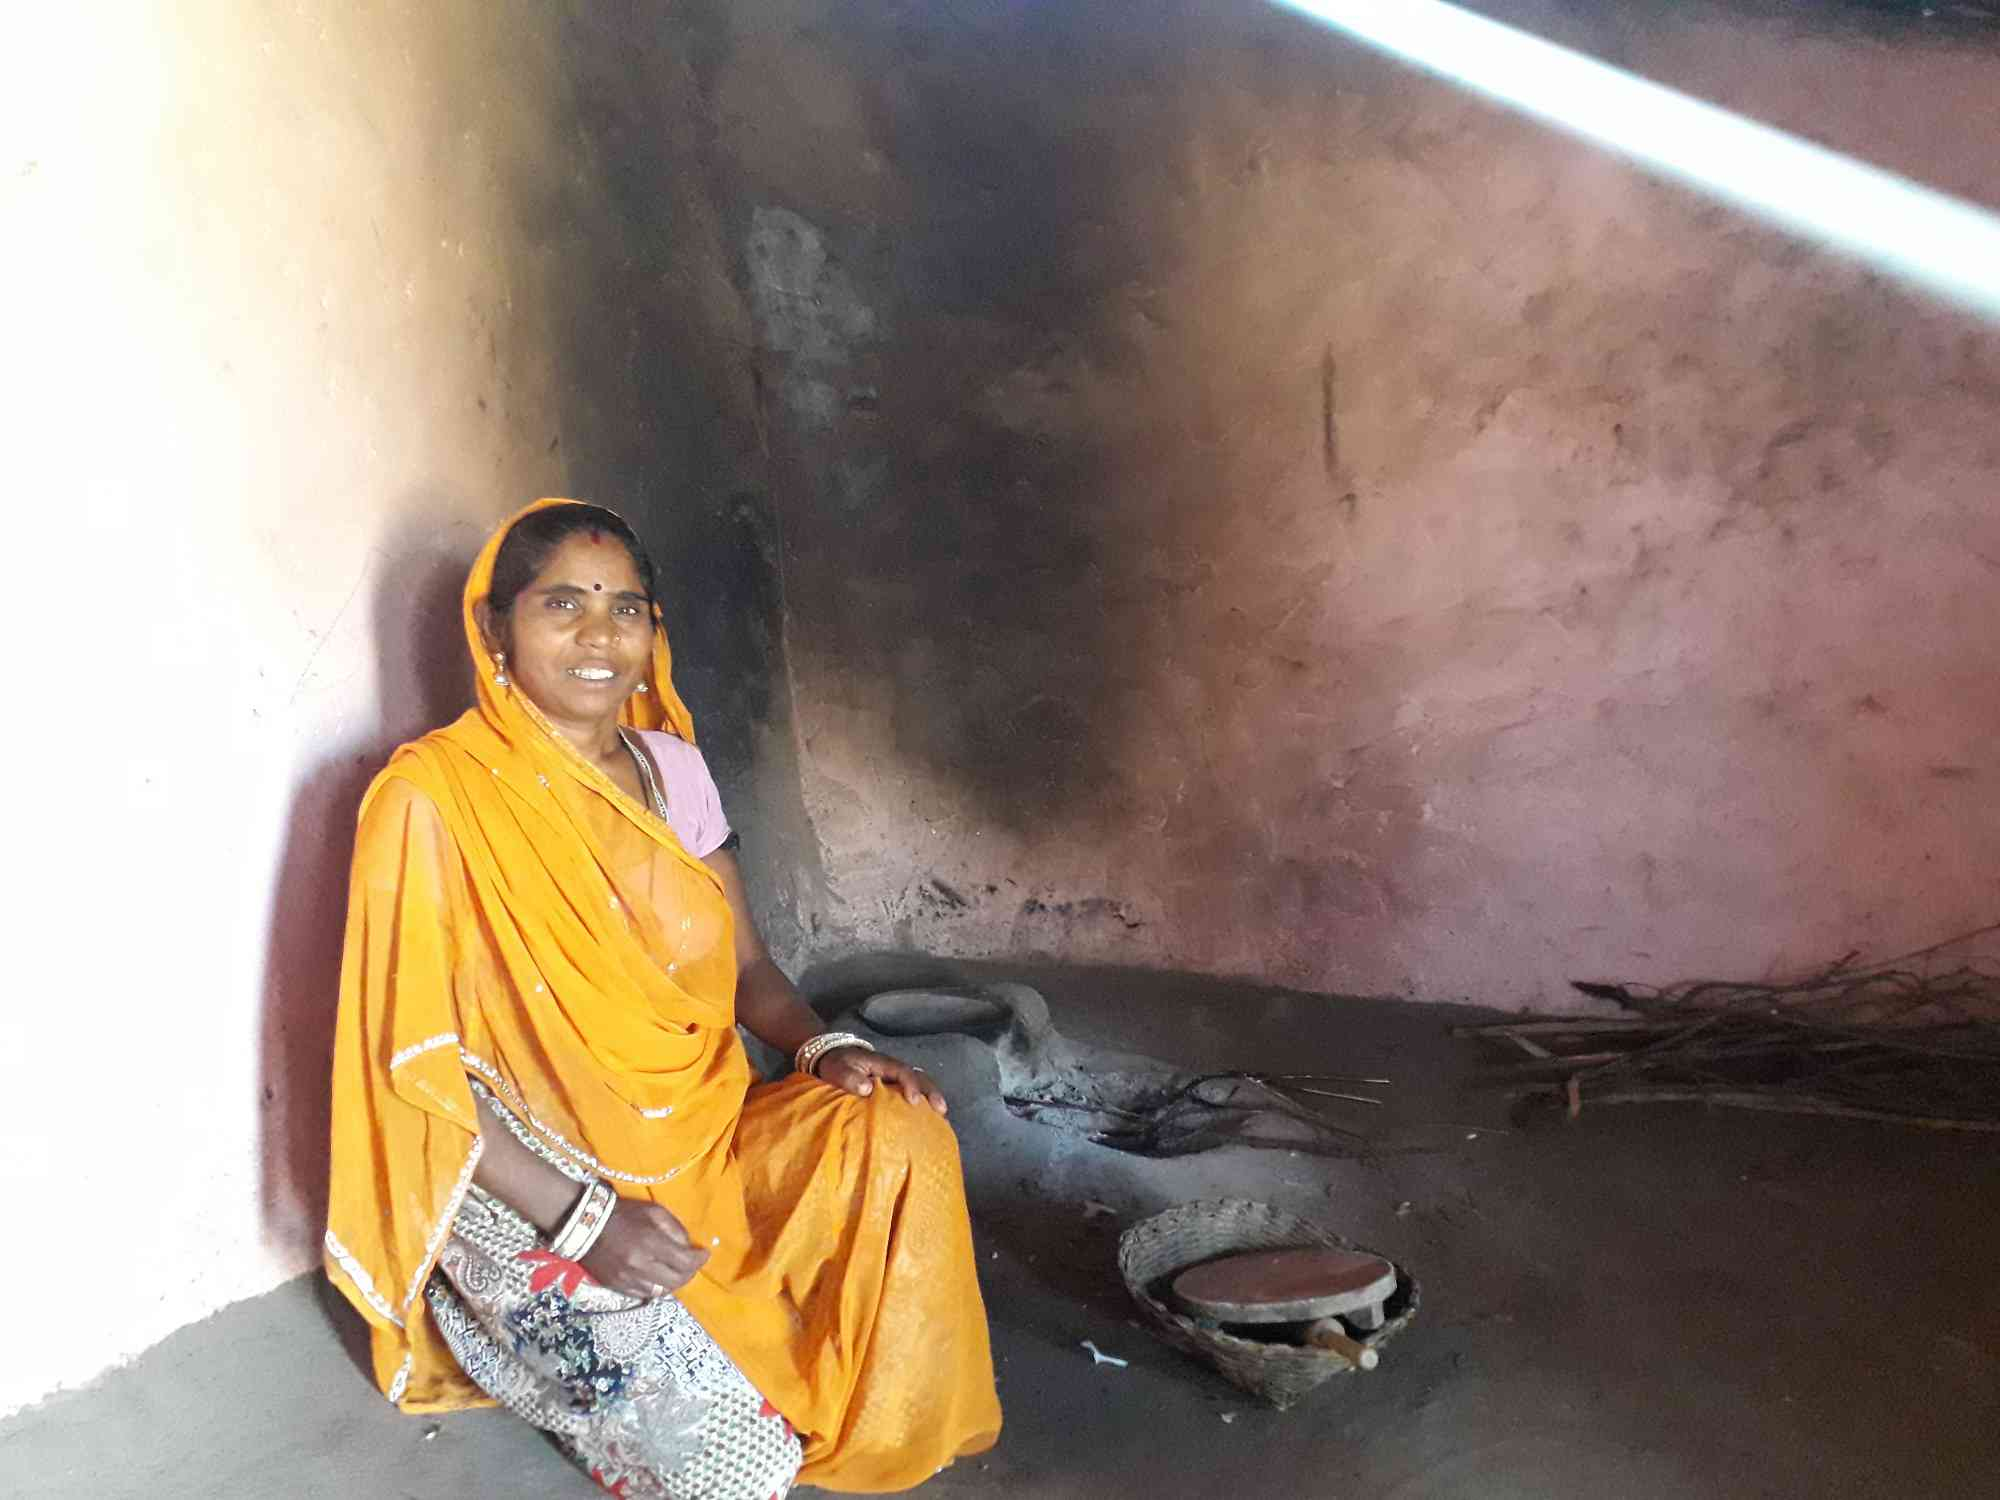 Kalubai Bargot cooks on an indoor firewood stove because refilling her LPG gas cylinder is too expensive.